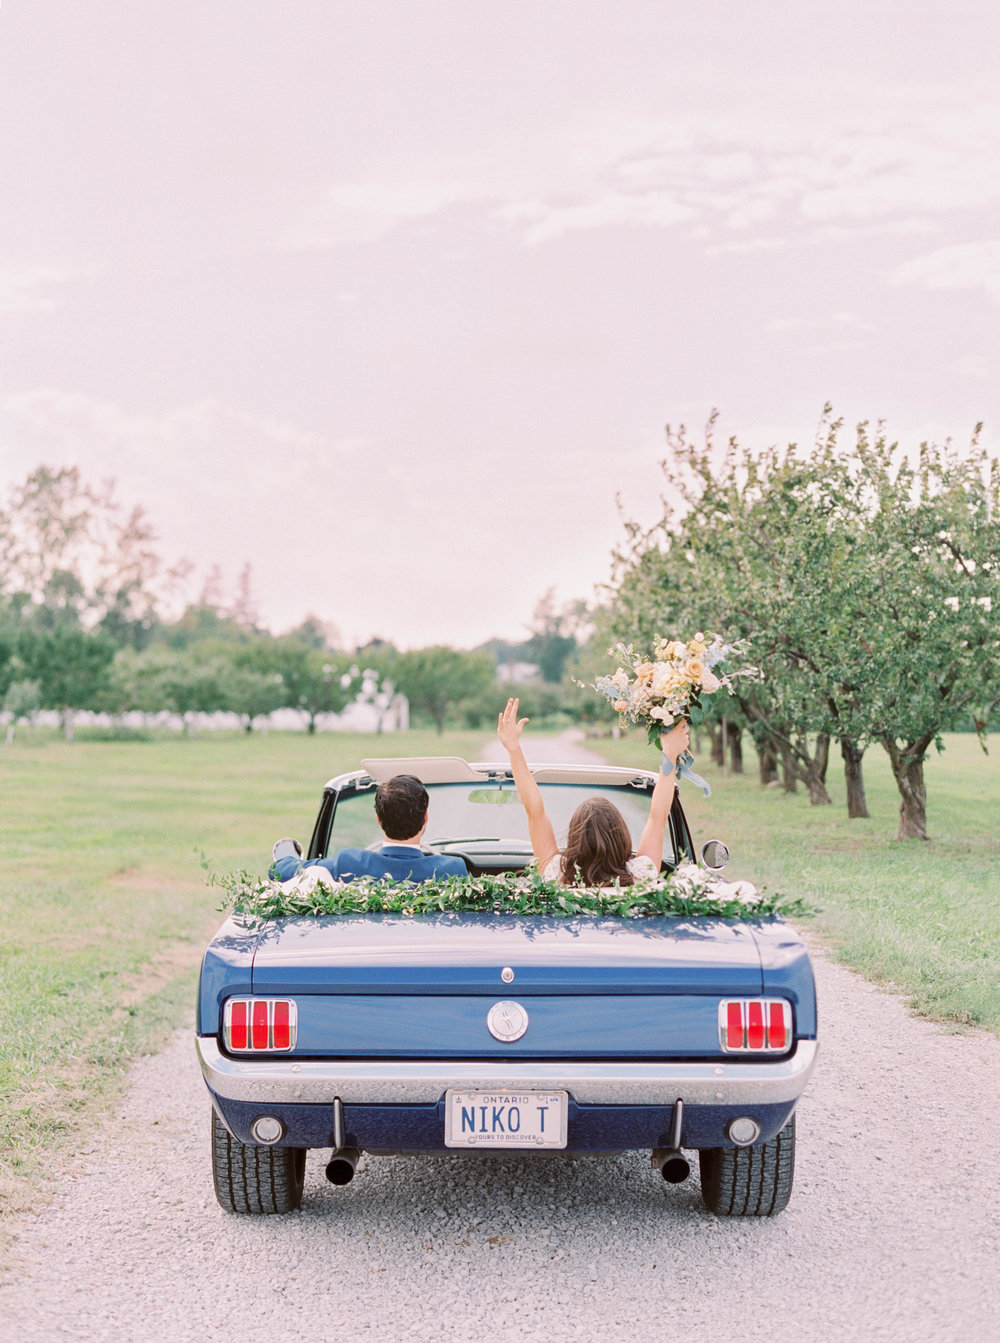 kurtz-gracewood-wedding-soft-airy-photographer-white-book-danielle-carmen-car.jpg